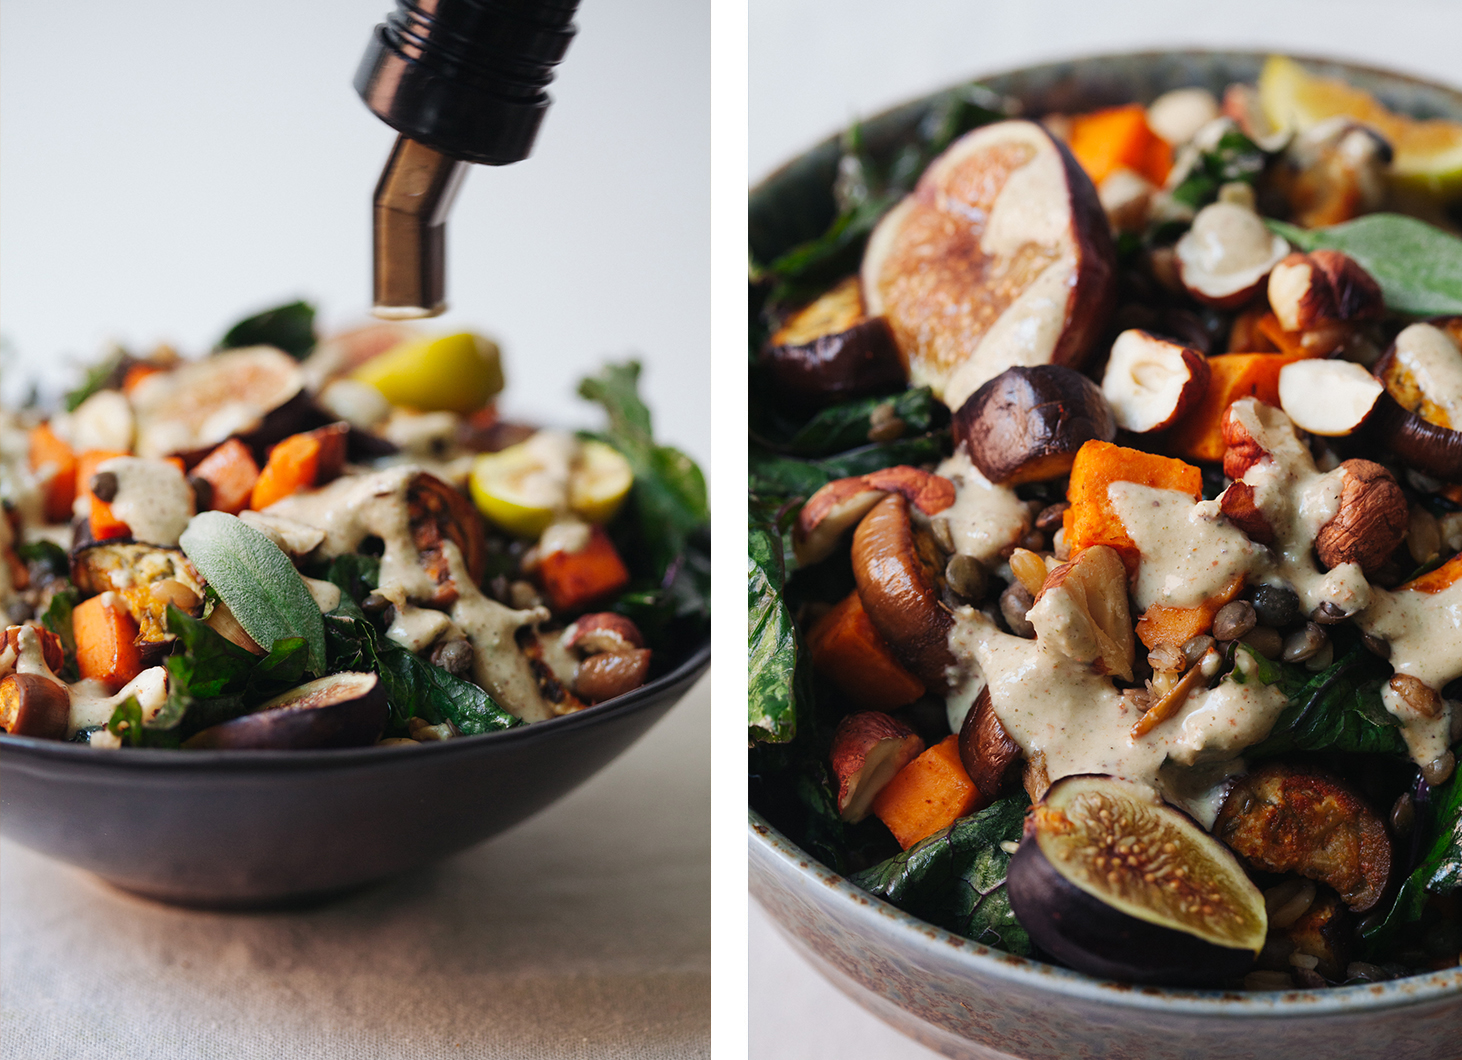 Fig, Sweet Potato and Eggplant Bowl with Hazelnut Vinaigrette | Golubka Kitchen